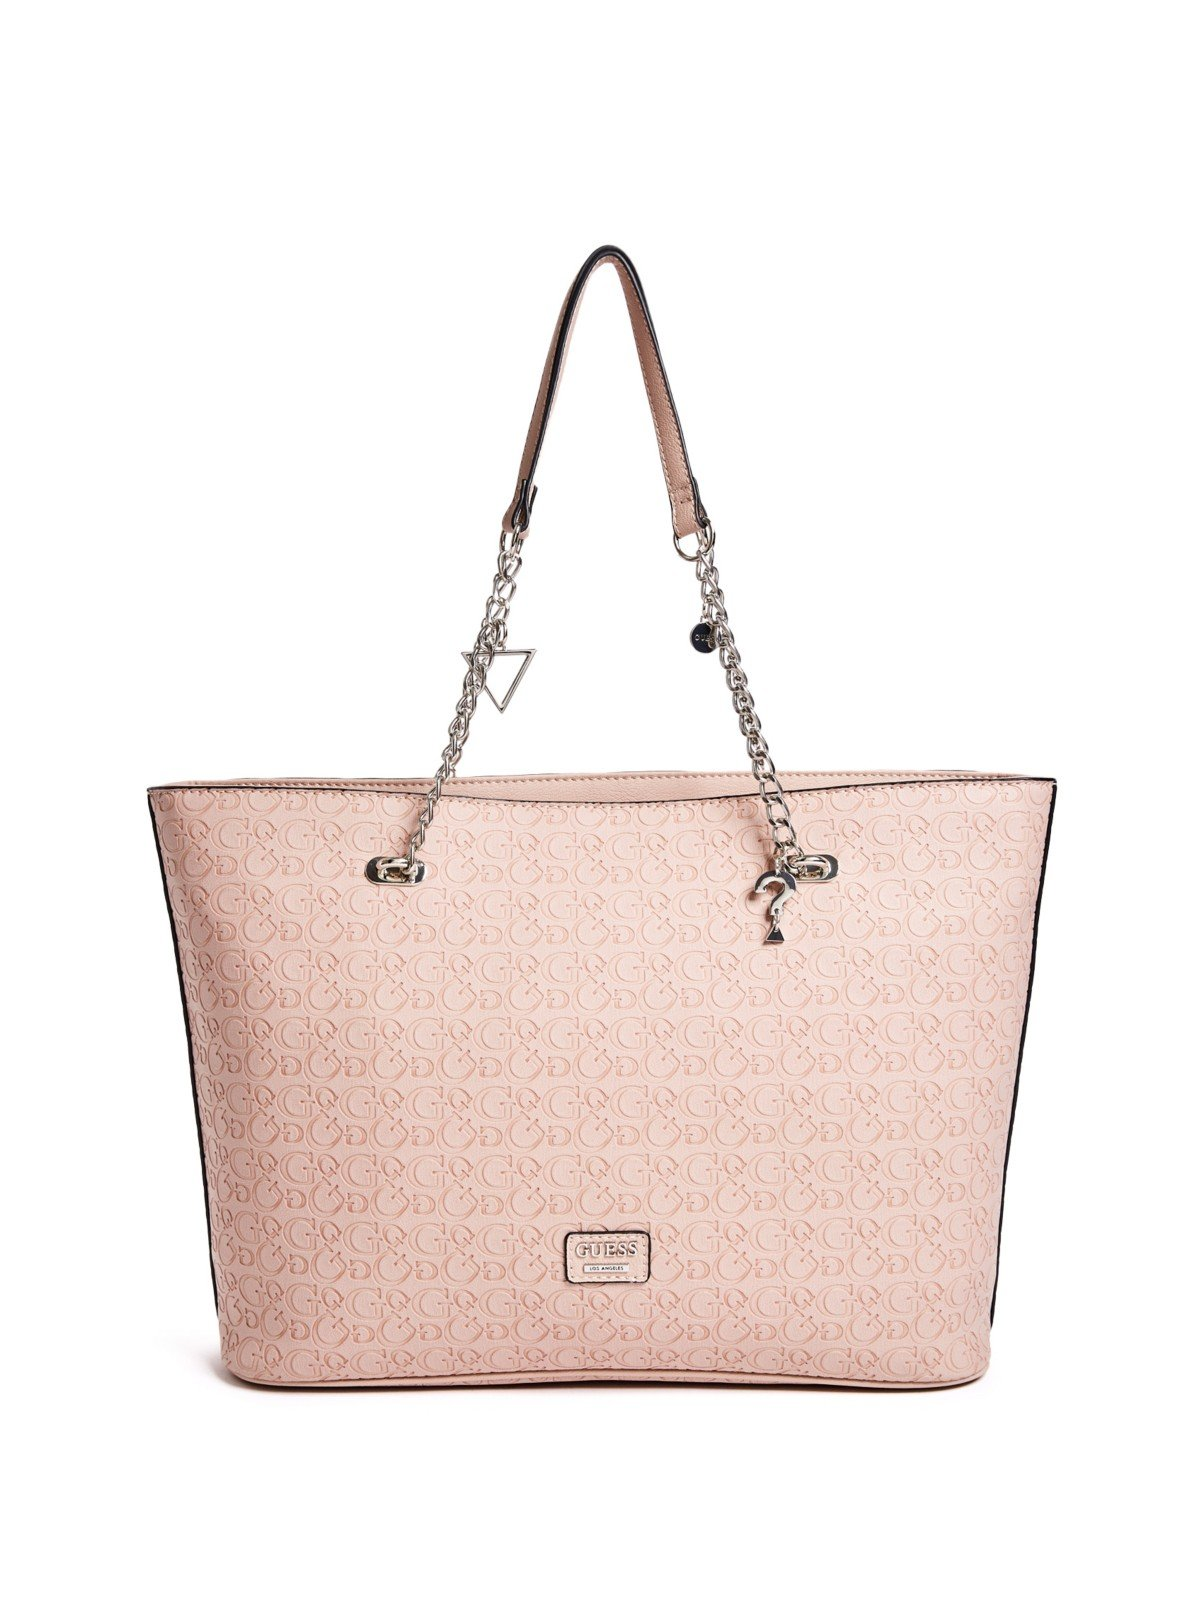 GUESS Factory Women's Larson Embossed Logo Top Chain Handle Tote